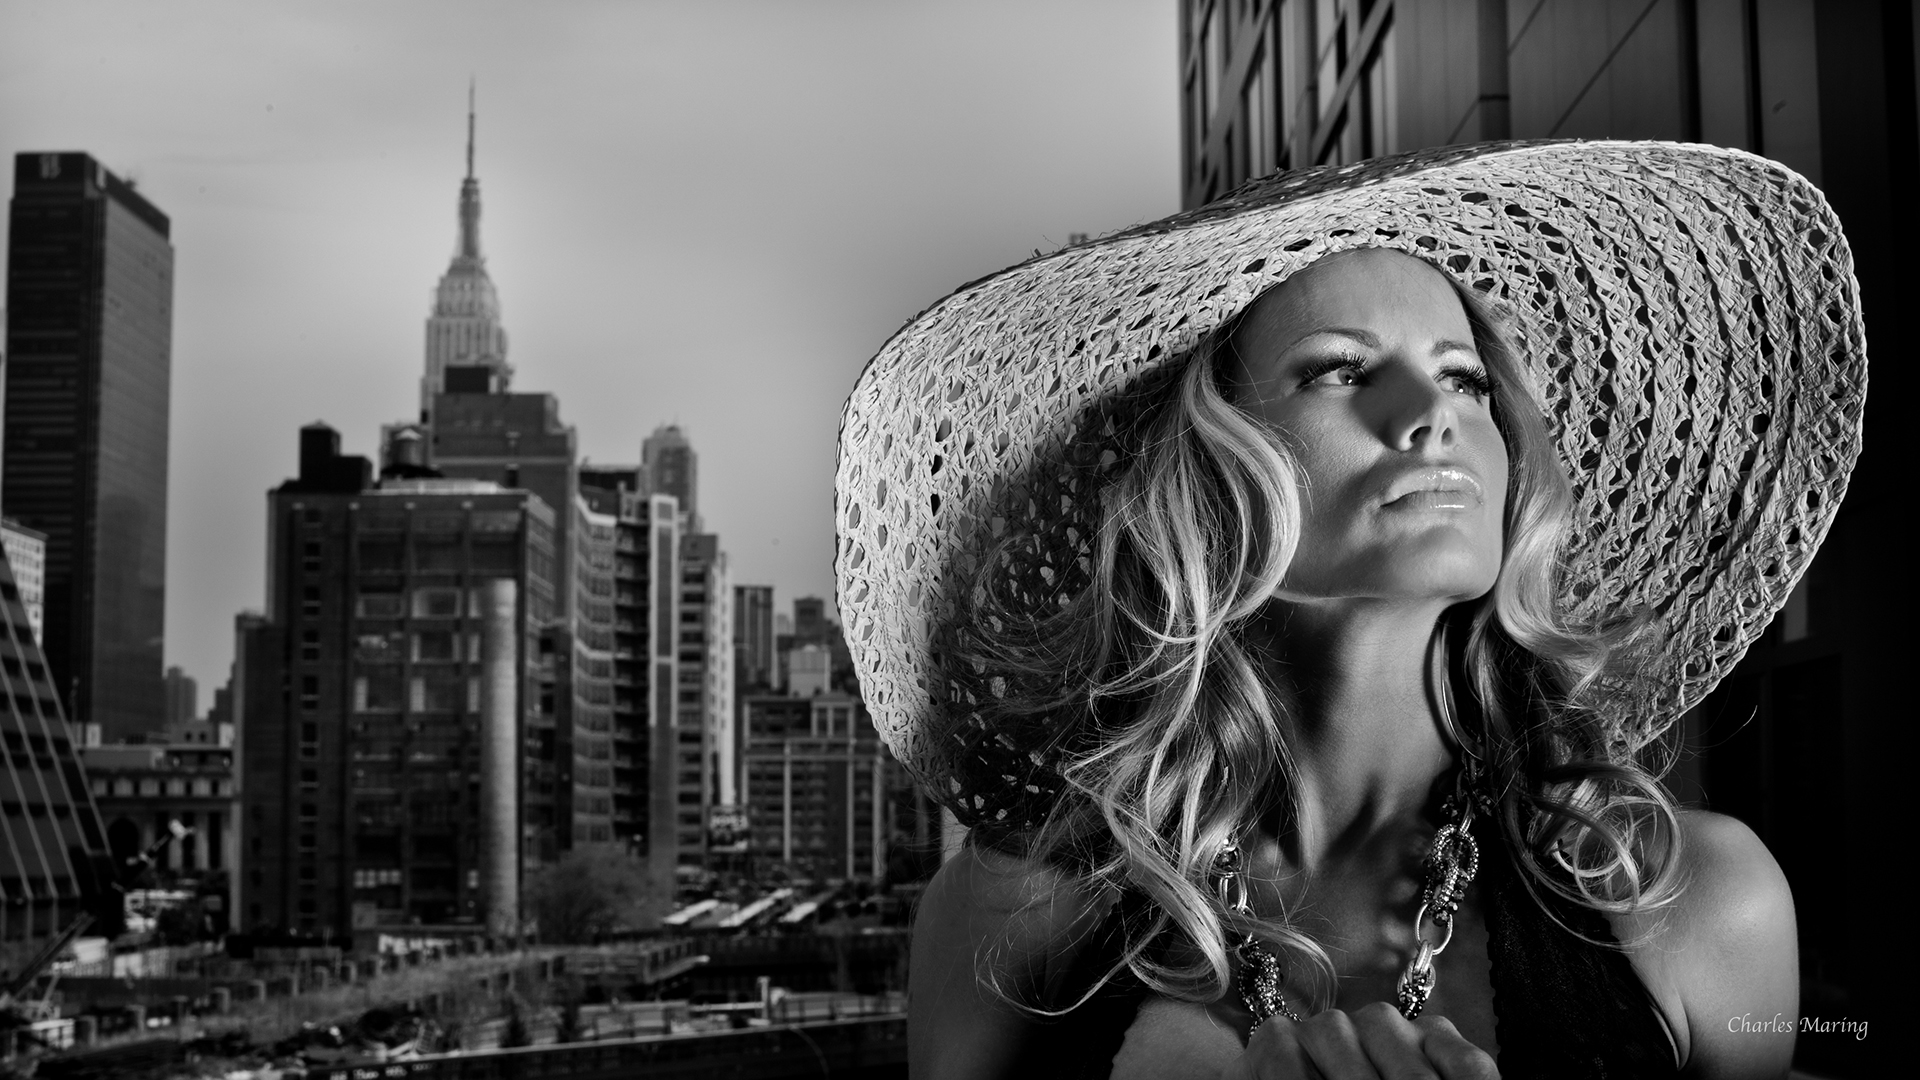 A glamorous city life portrait taken by Charles on his studio terrace in NYC